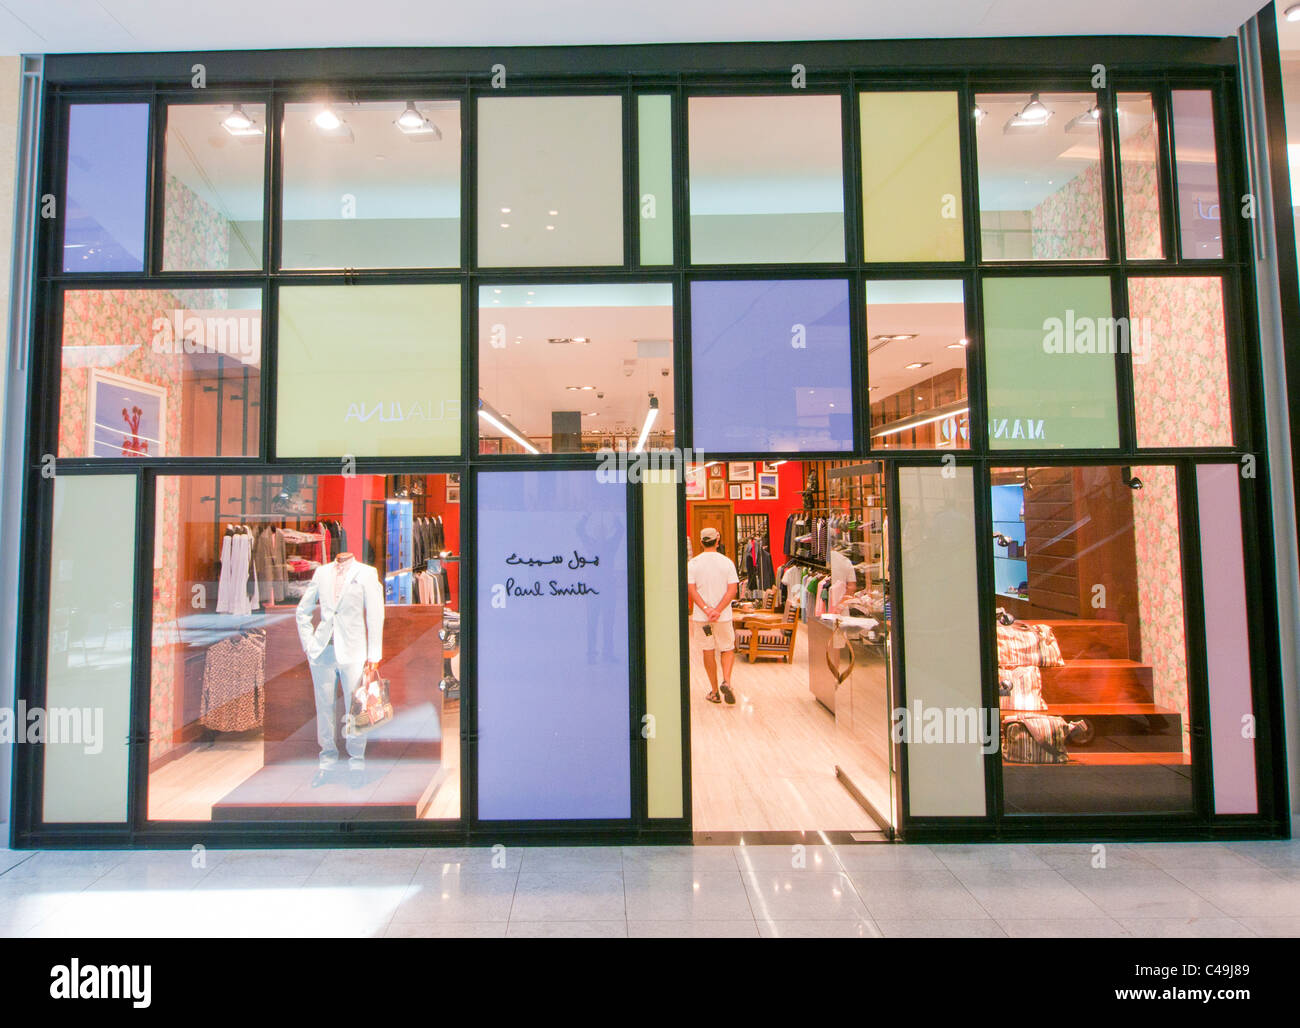 Paul Smith store all'interno del centro commerciale di Dubai negli Emirati arabi uniti Immagini Stock